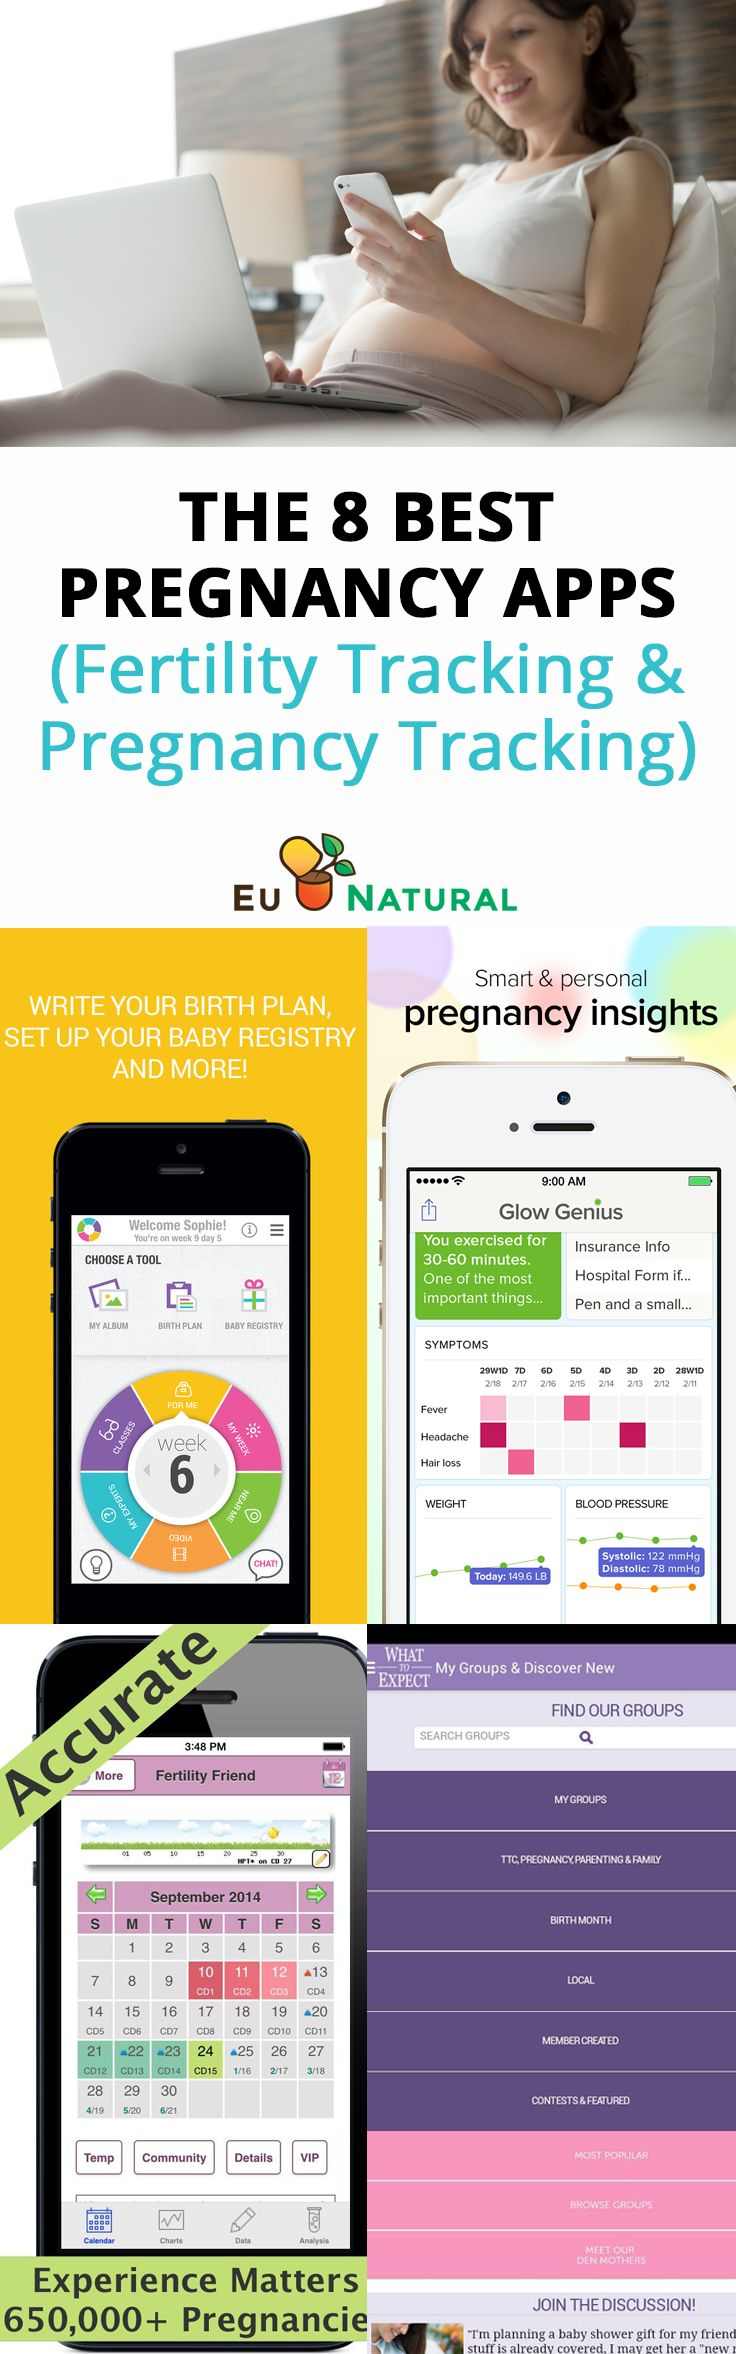 The Most Popular Pregnancy Apps in 2017 (Fertility Tracking & Pregnancy Tracking)